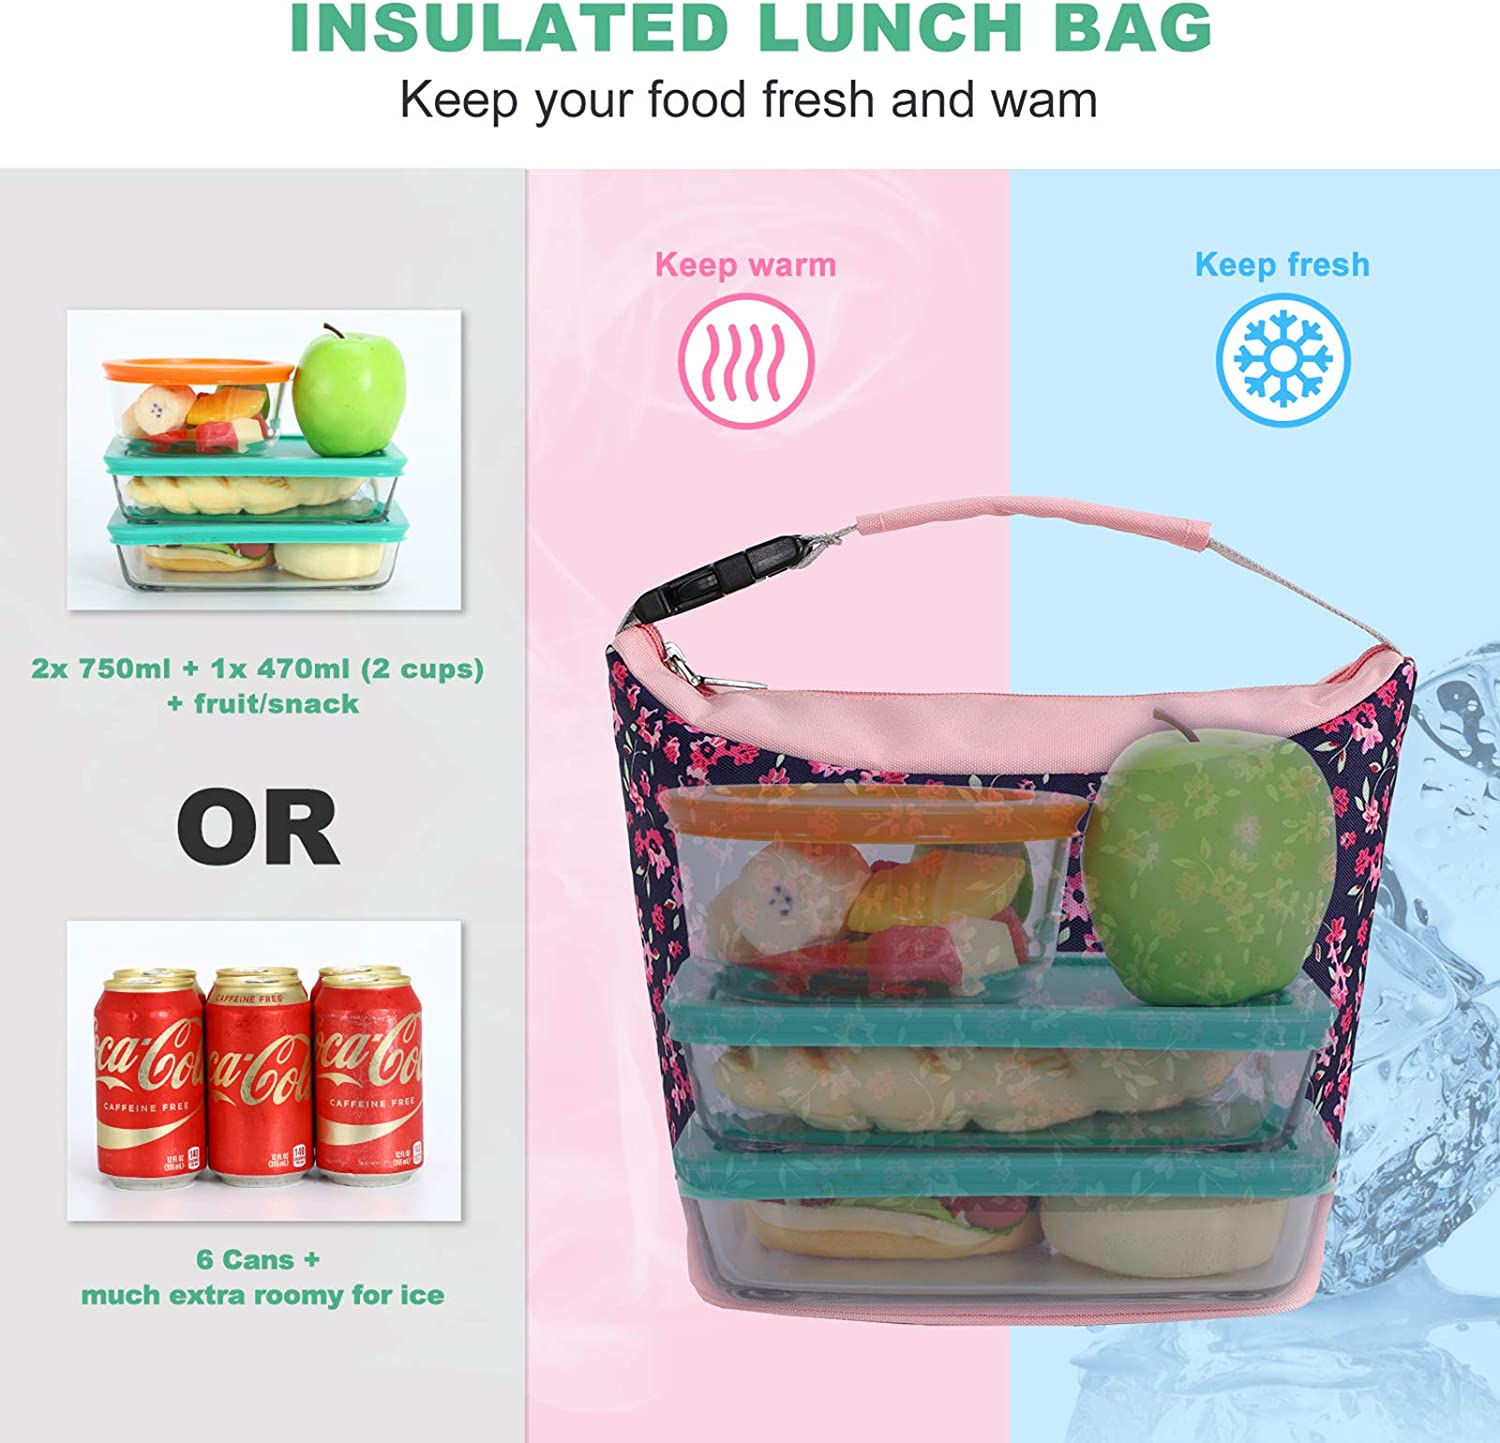 MIER Small Lunch Bag Purse Insulated Leakproof Cooler Lunch Tote for Kids Girls Boys Women Men to School Work Travel Gym Pink /& Crabapple Buckle Handle